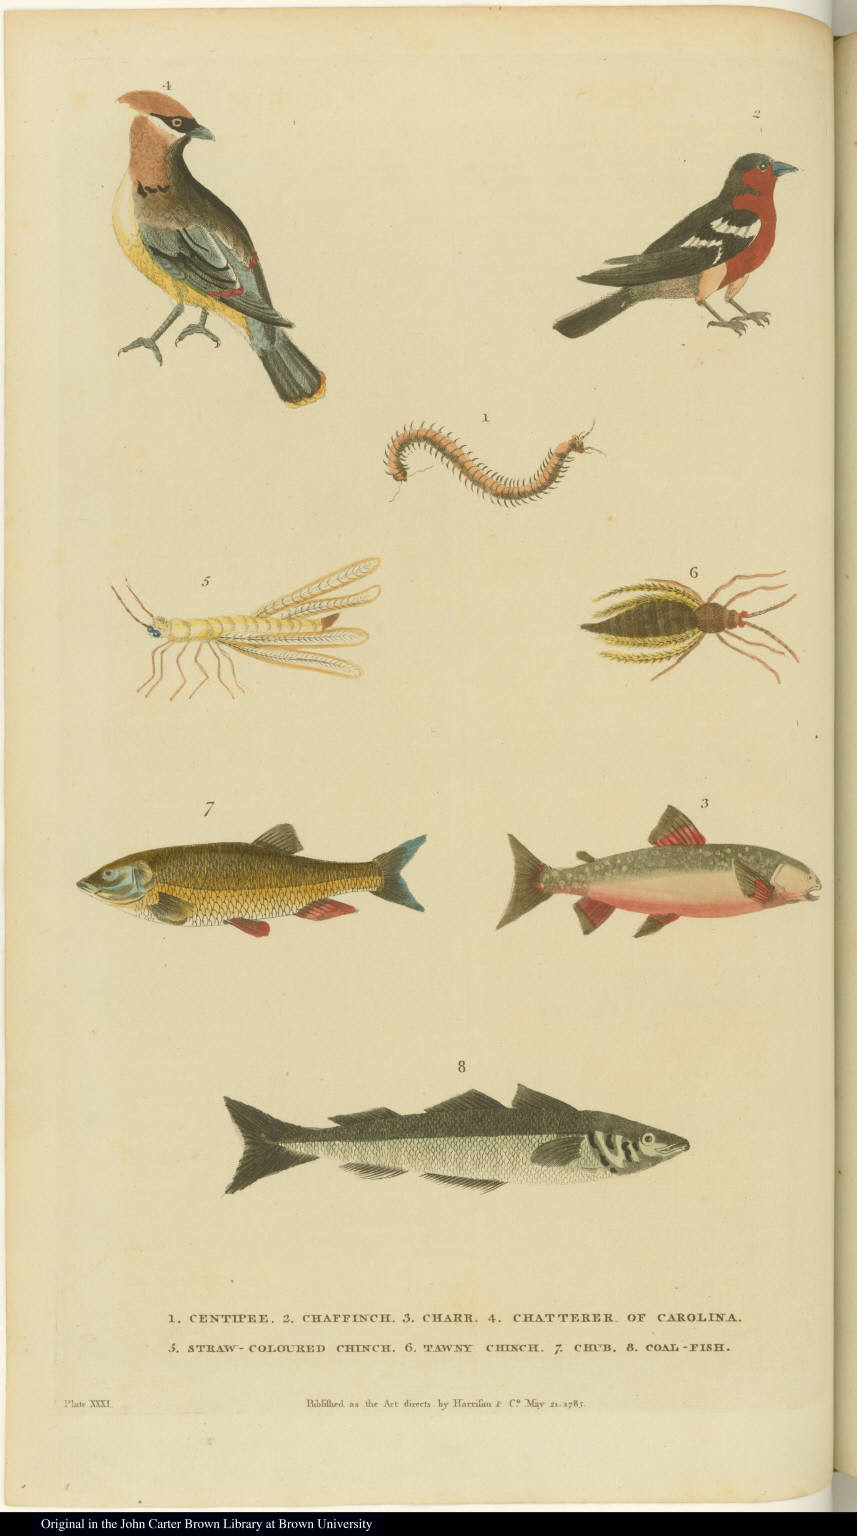 [Birds, insects, and fish]